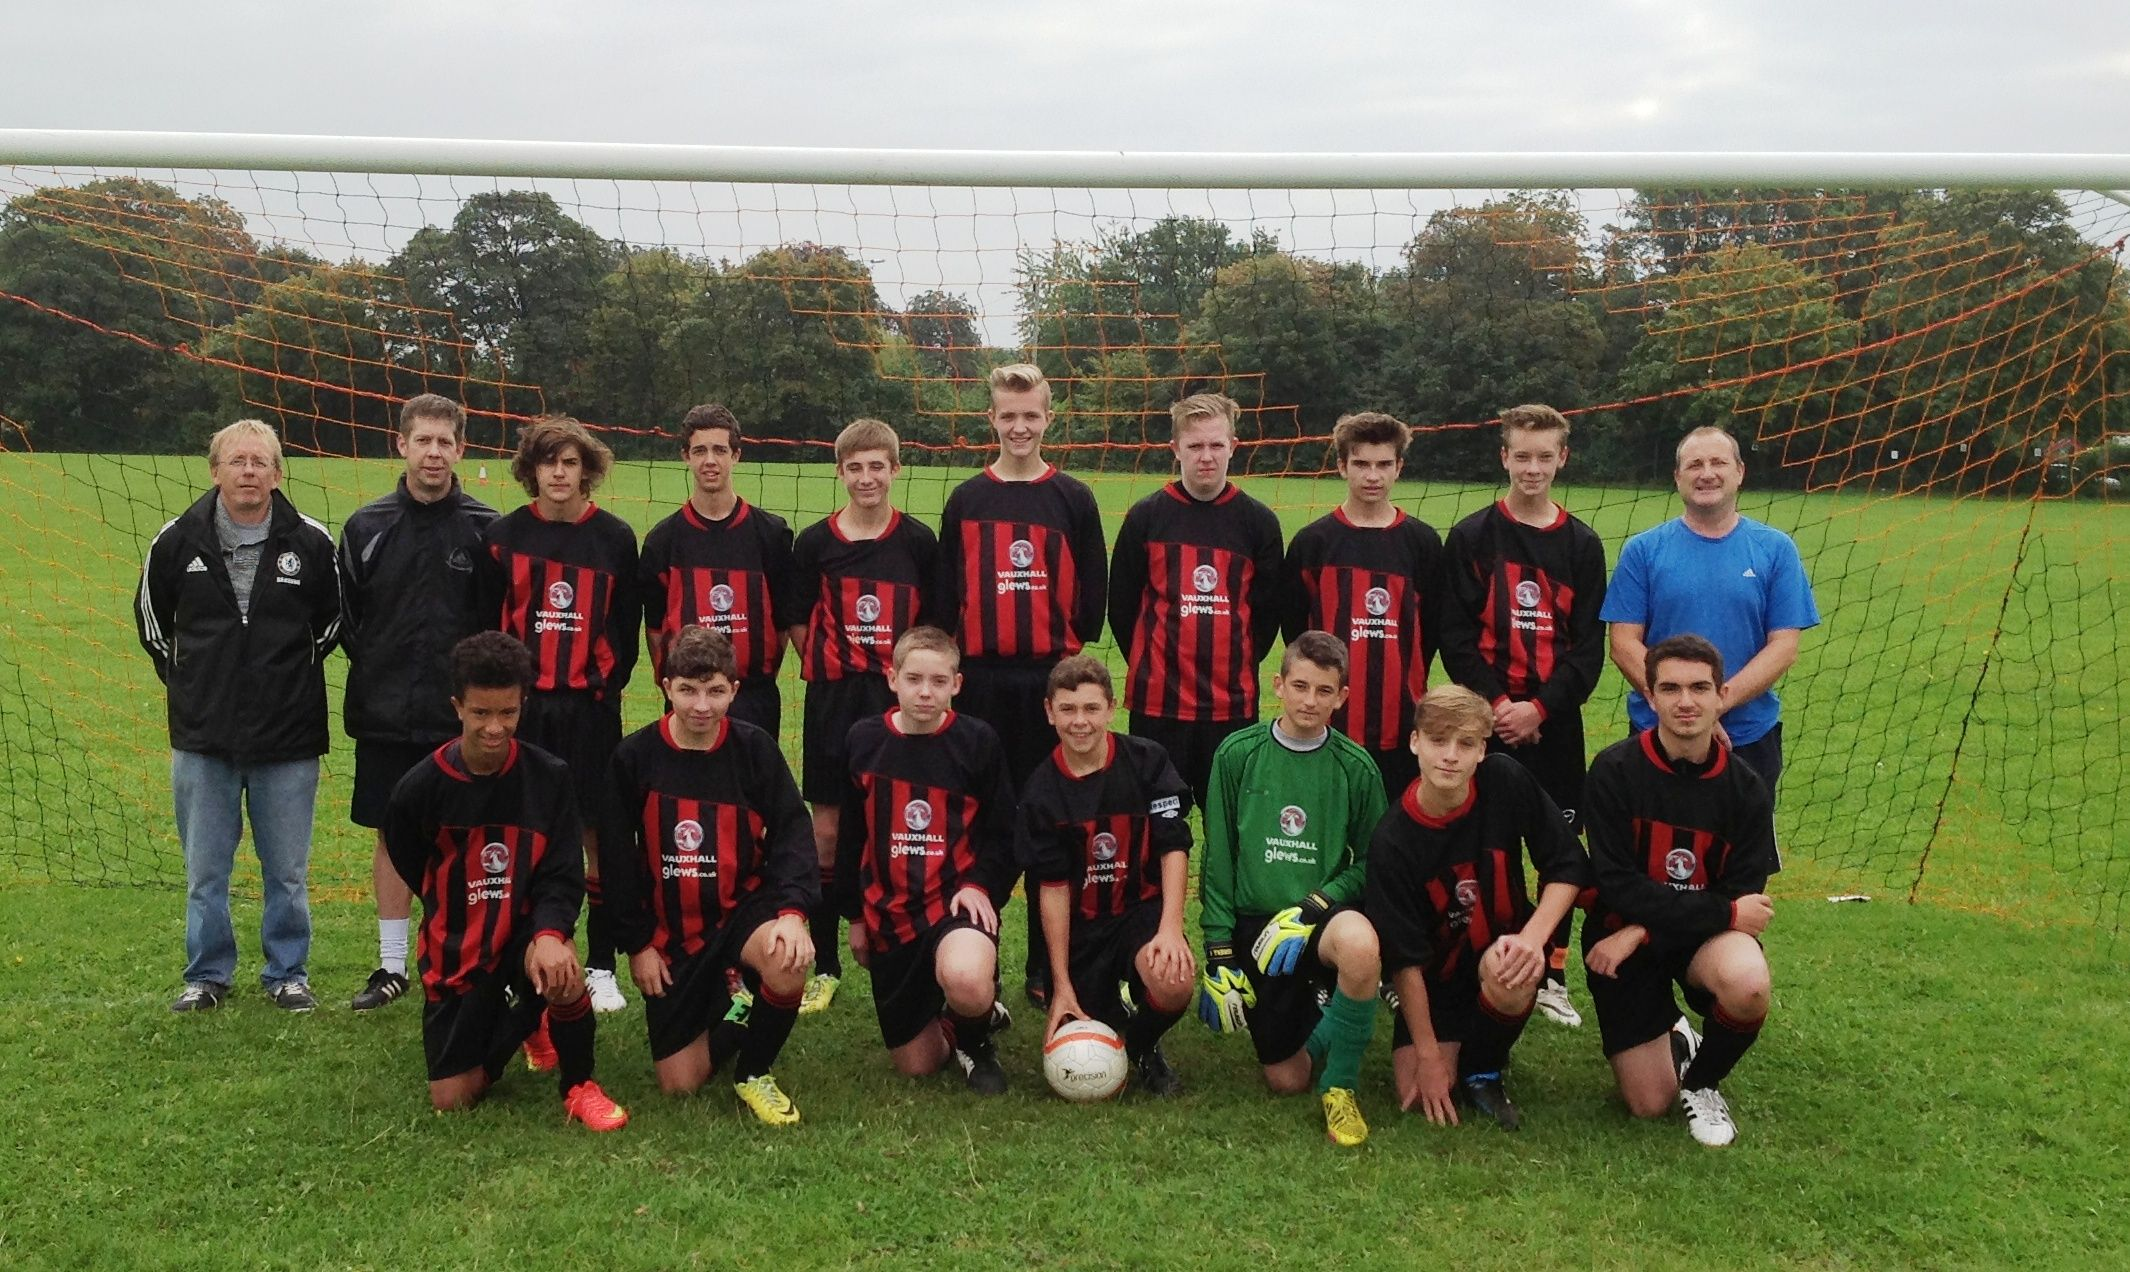 Barnby Dun Colts get New Strip Courtesy of Glews